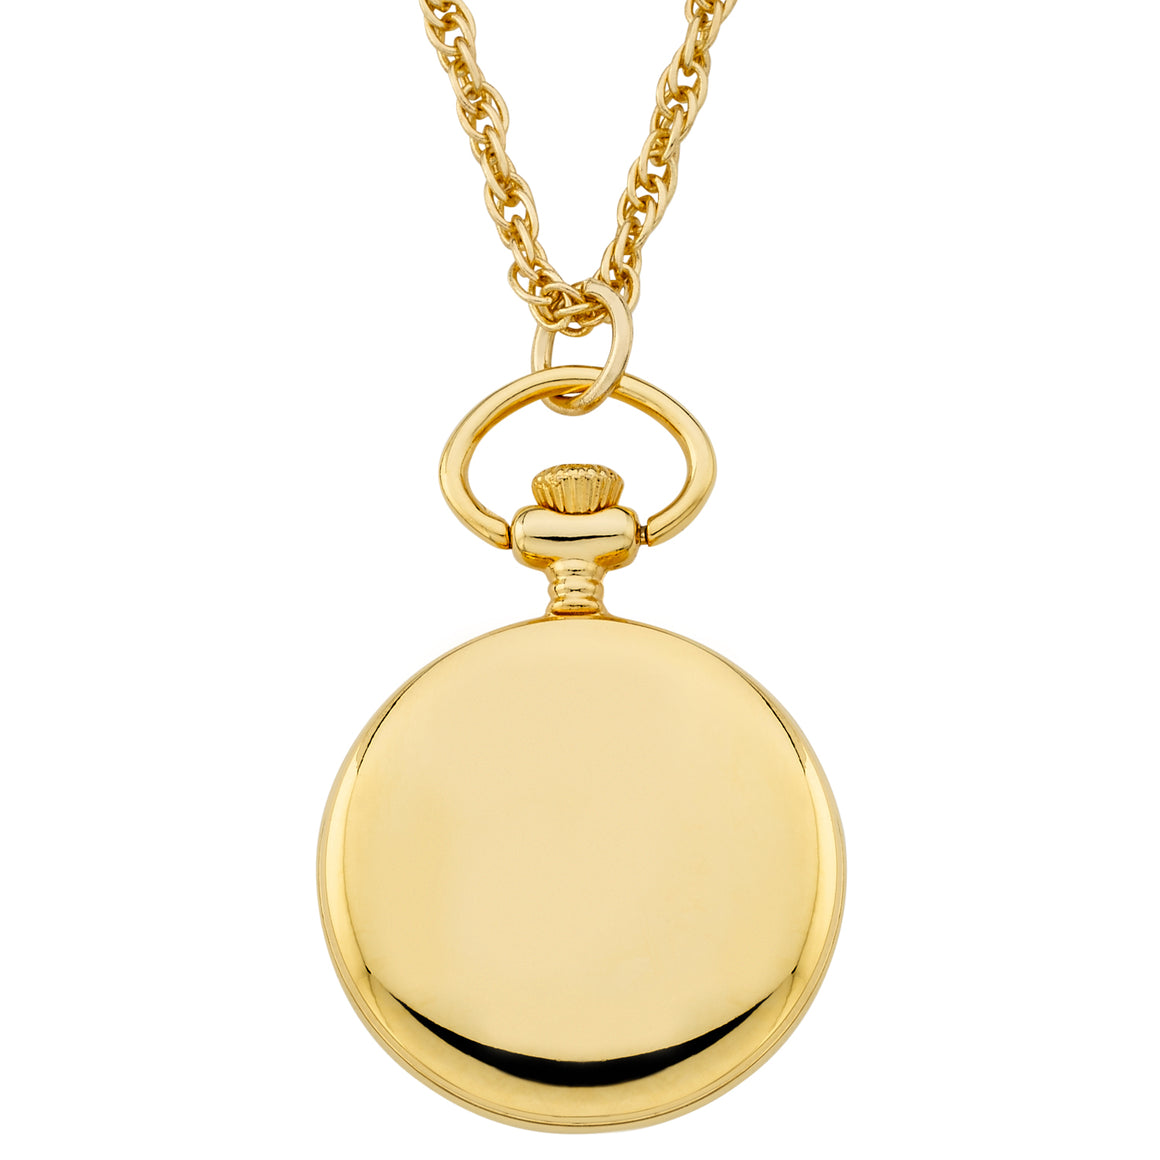 Gotham Women's Gold-Tone Open Face Pendant Watch with Chain # GWC14140GA